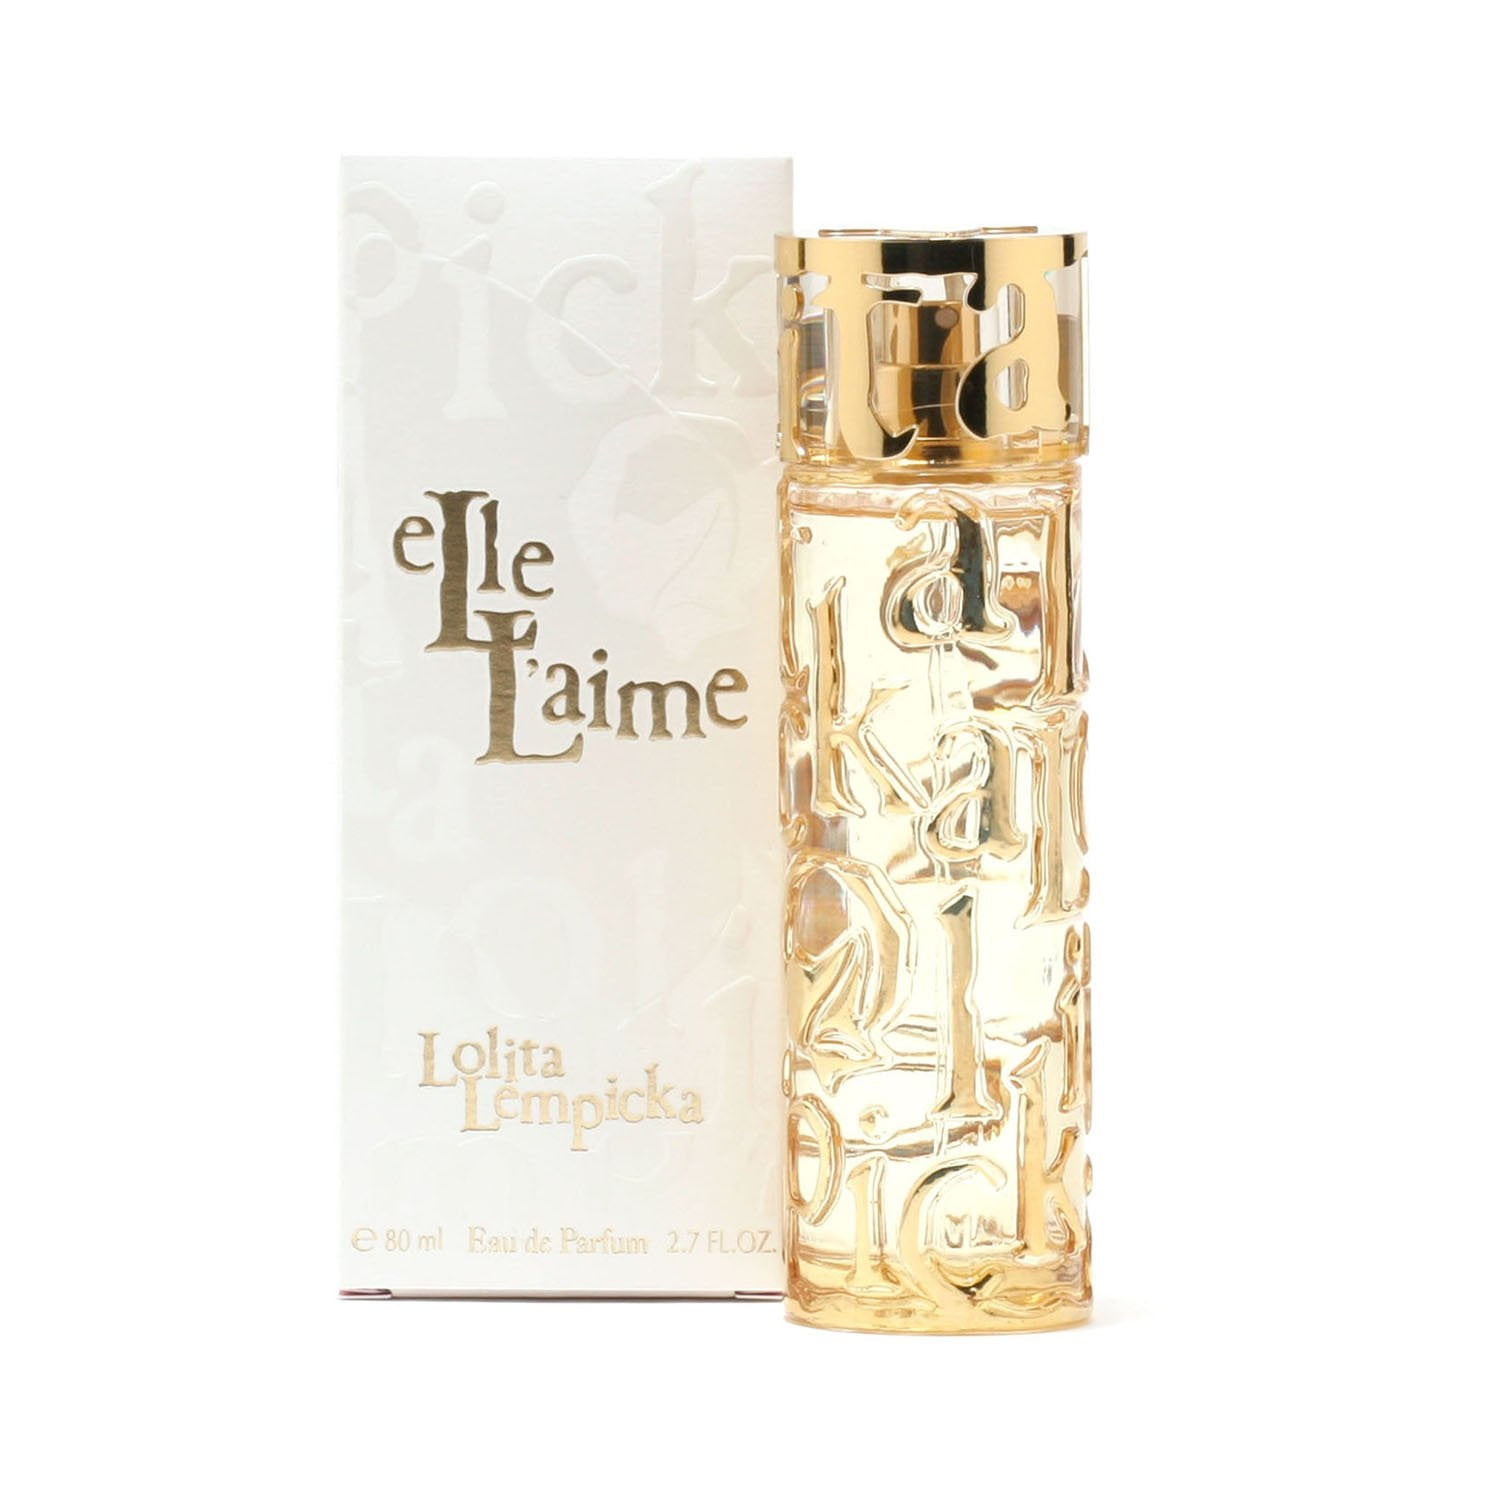 Perfume - LOLITA LEMPICKA ELLE L'AIME FOR WOMEN - EAU DE PARFUM SPRAY, 2.7 OZ